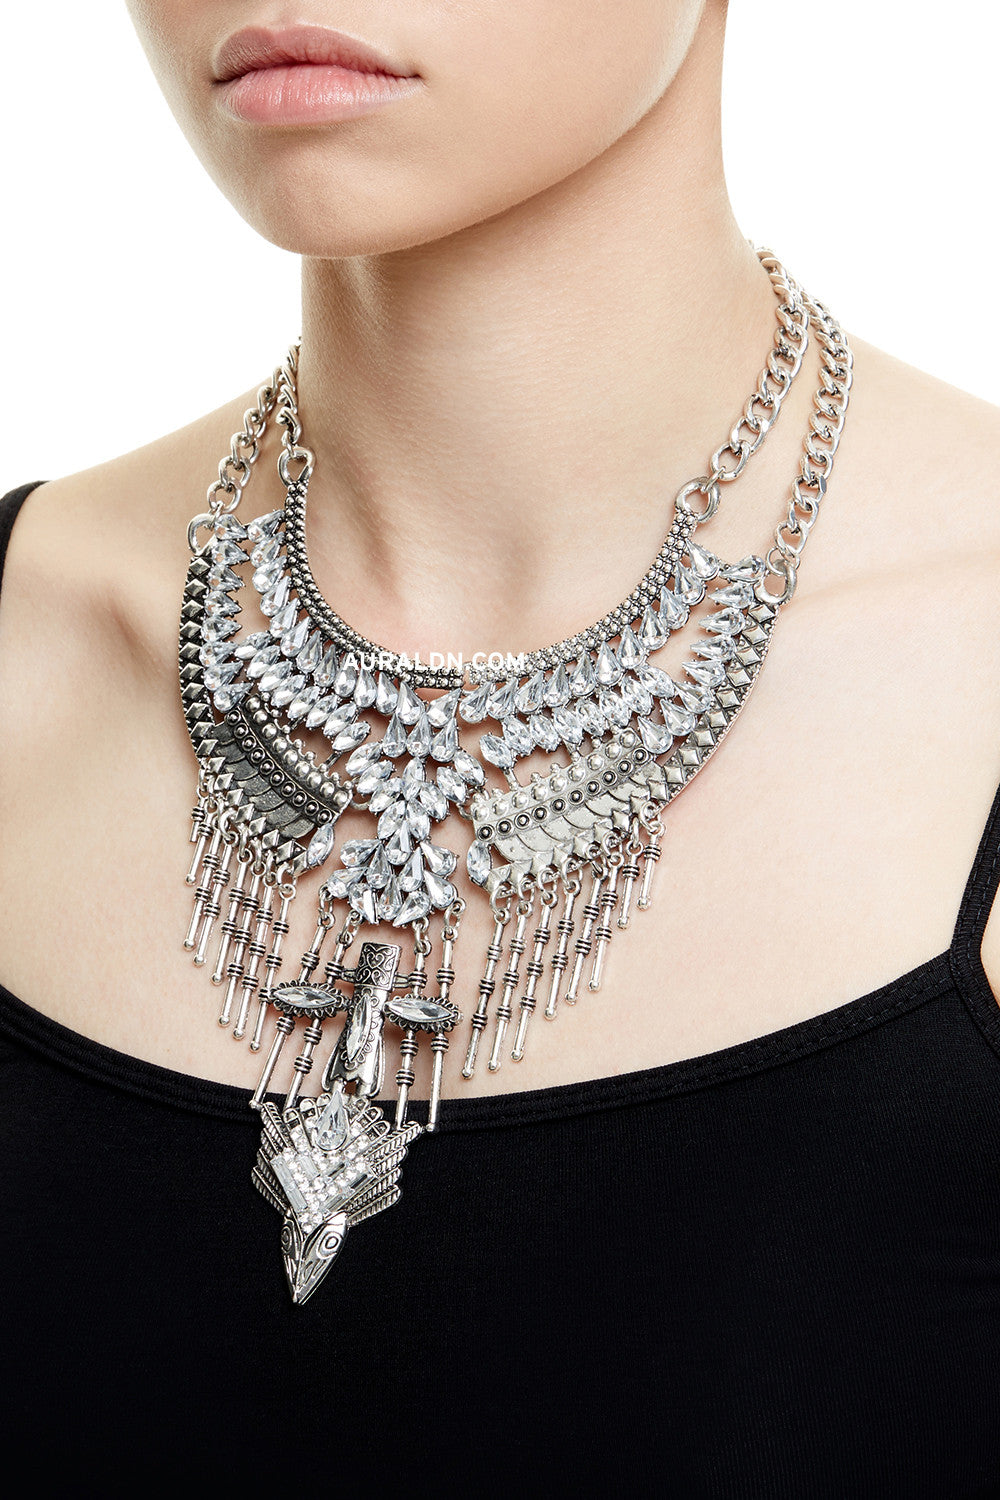 PORTOBELLO STATEMENT NECKLACE - SILVER